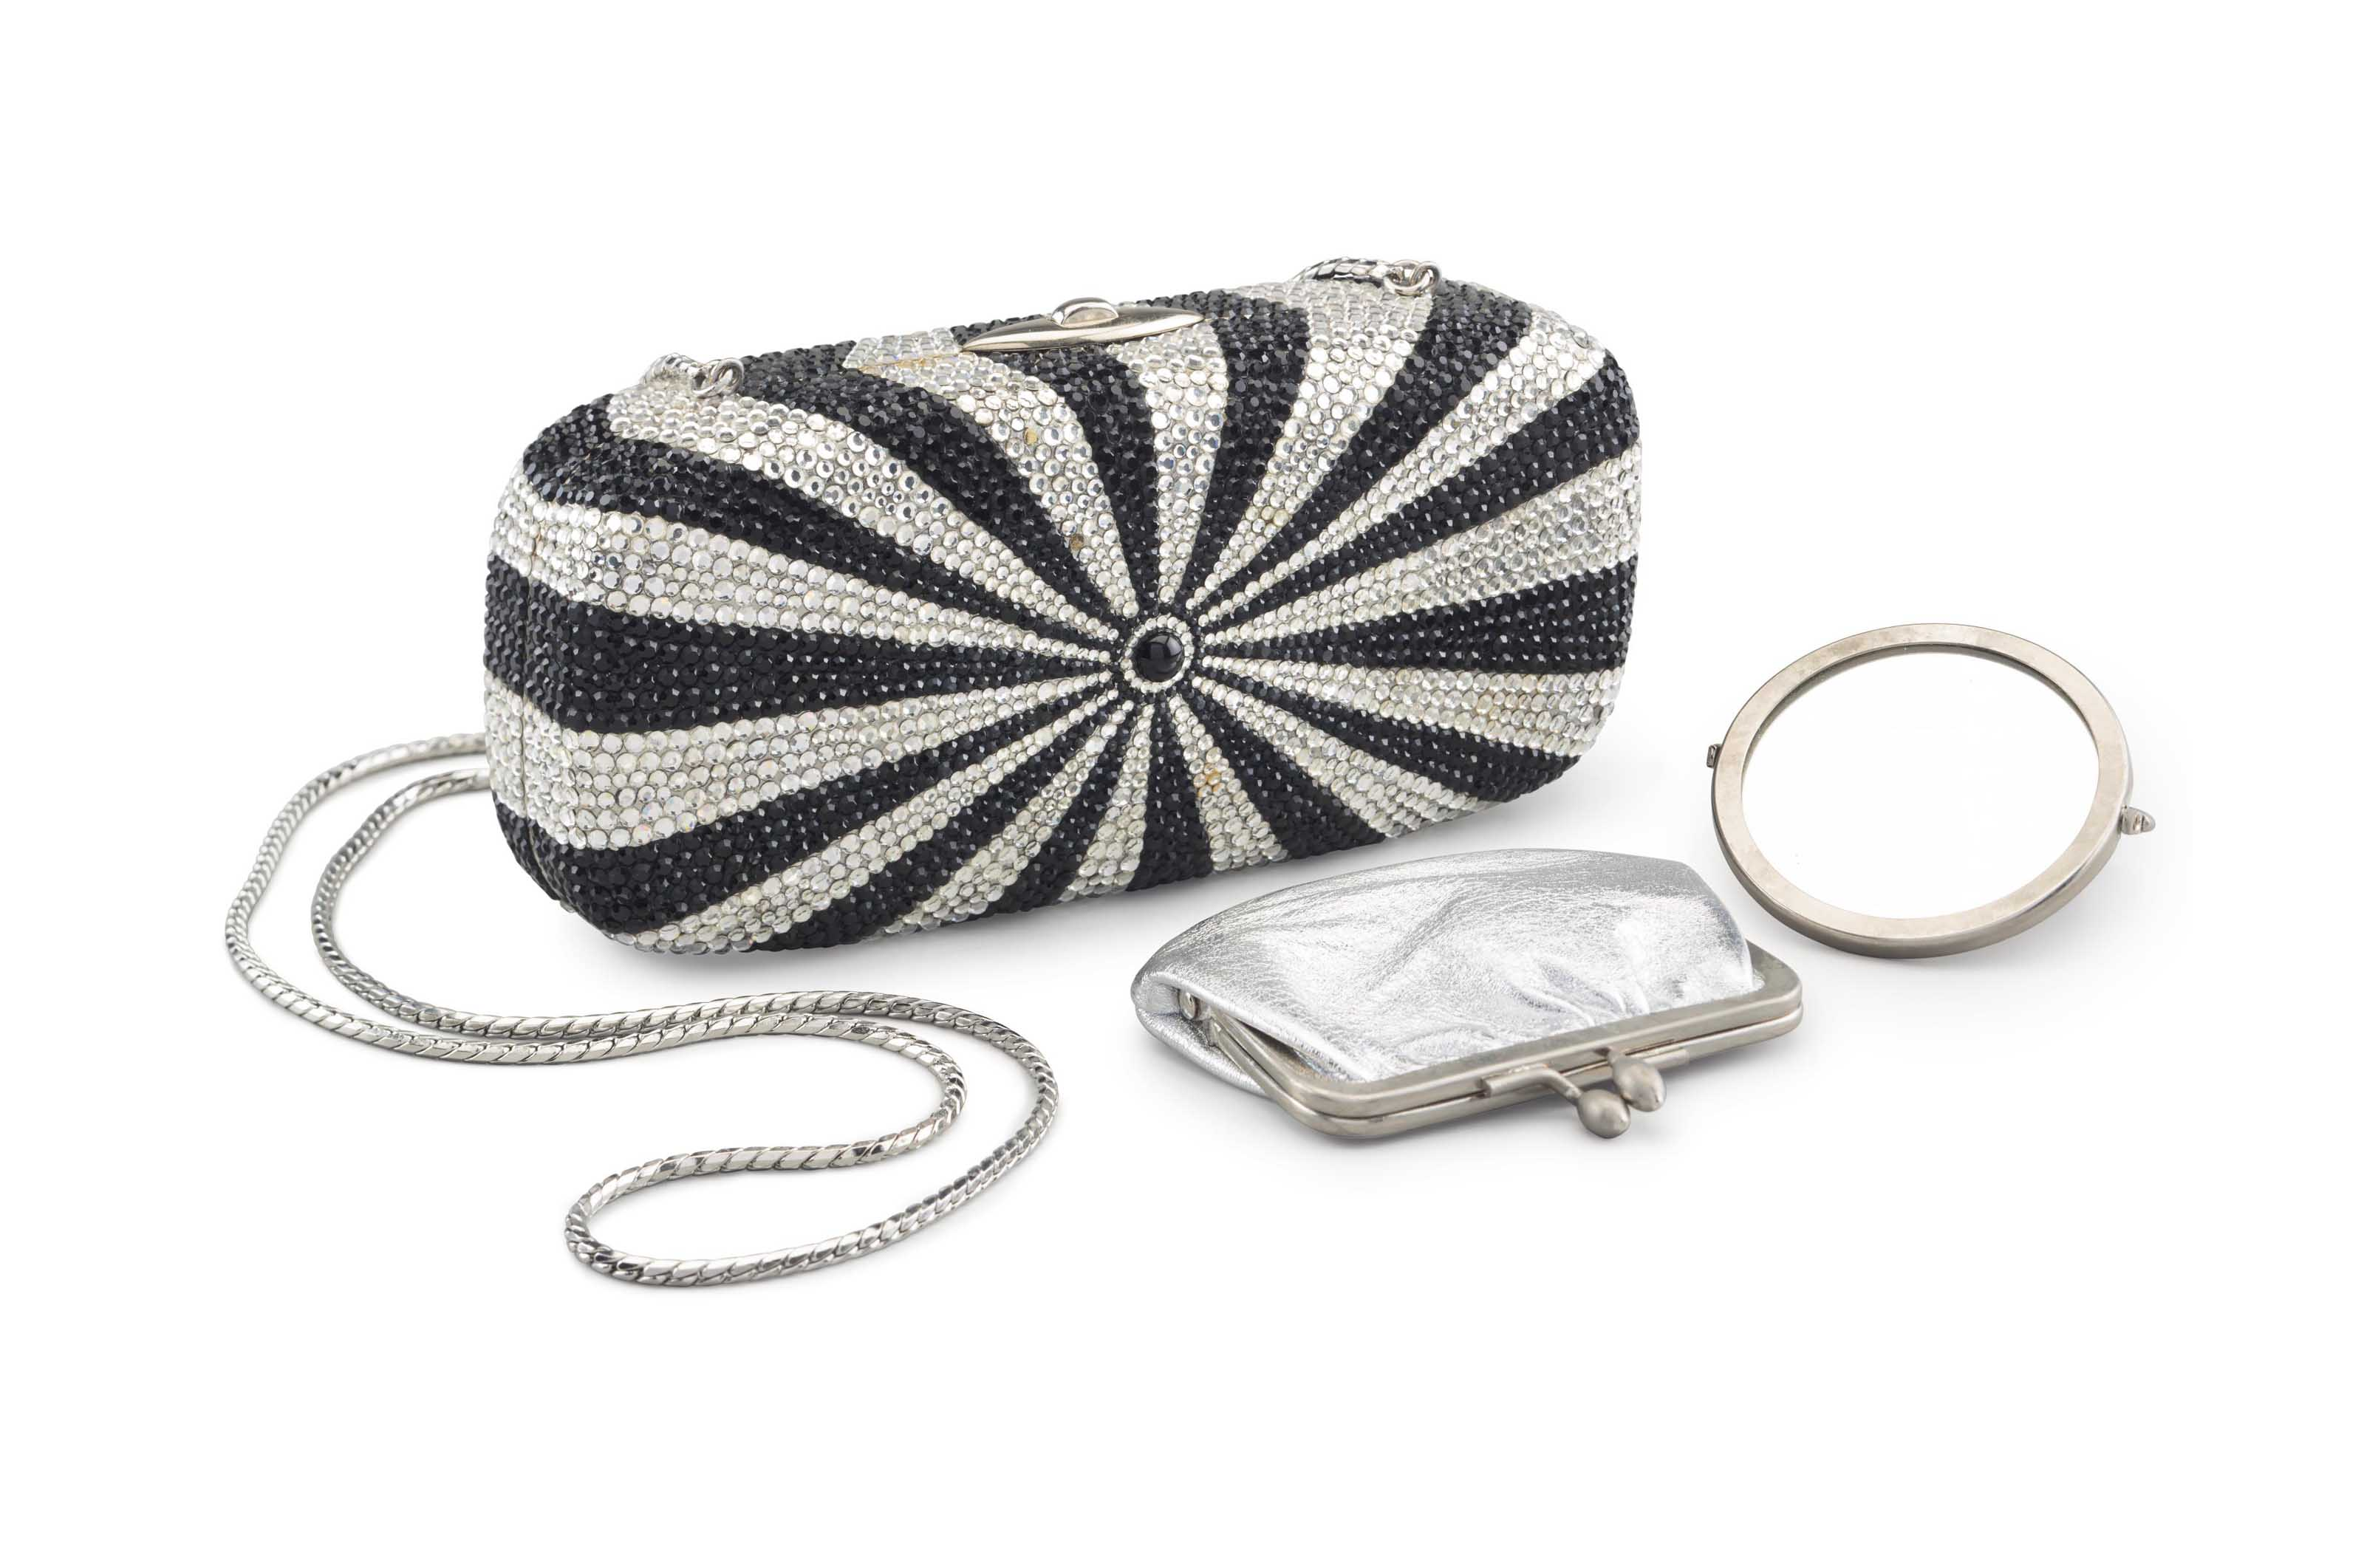 A BLACK & SILVER CRYSTAL BEADED BULLS-EYE BOX CLUTCH BAG